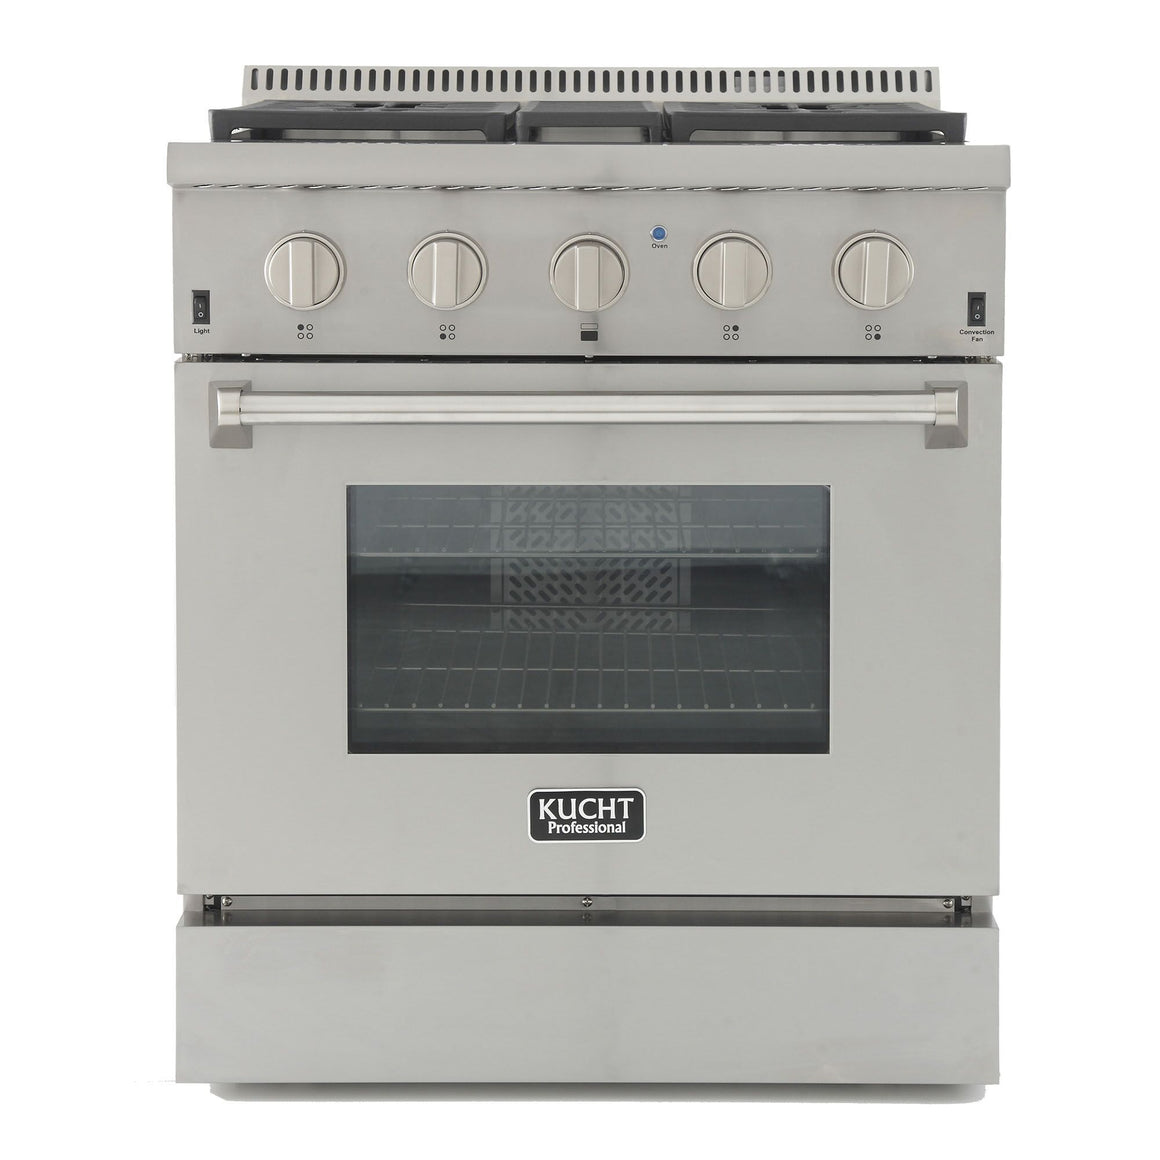 "Kucht 30"" Pro Stainless Gas Range, 4.2 cu ft, Stainless Knobs KRG3080U - Farmhouse Kitchen and Bath"